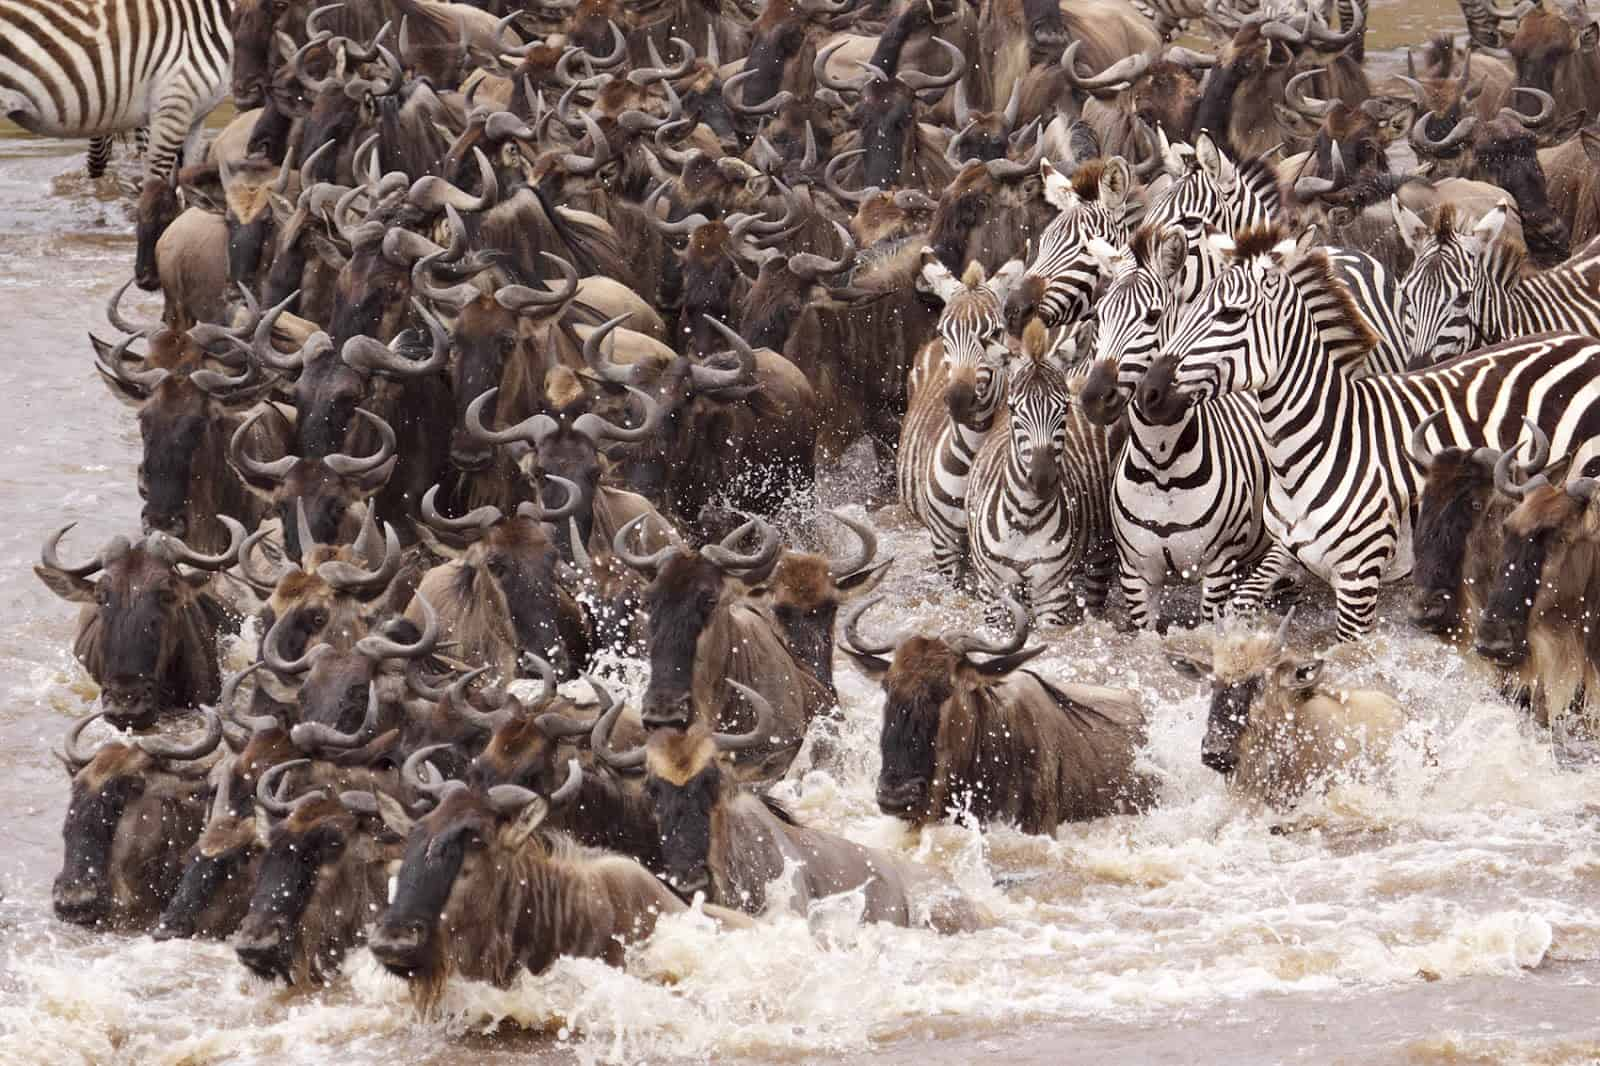 Currently accepting safari booking for wildebeest migration in Tanzania